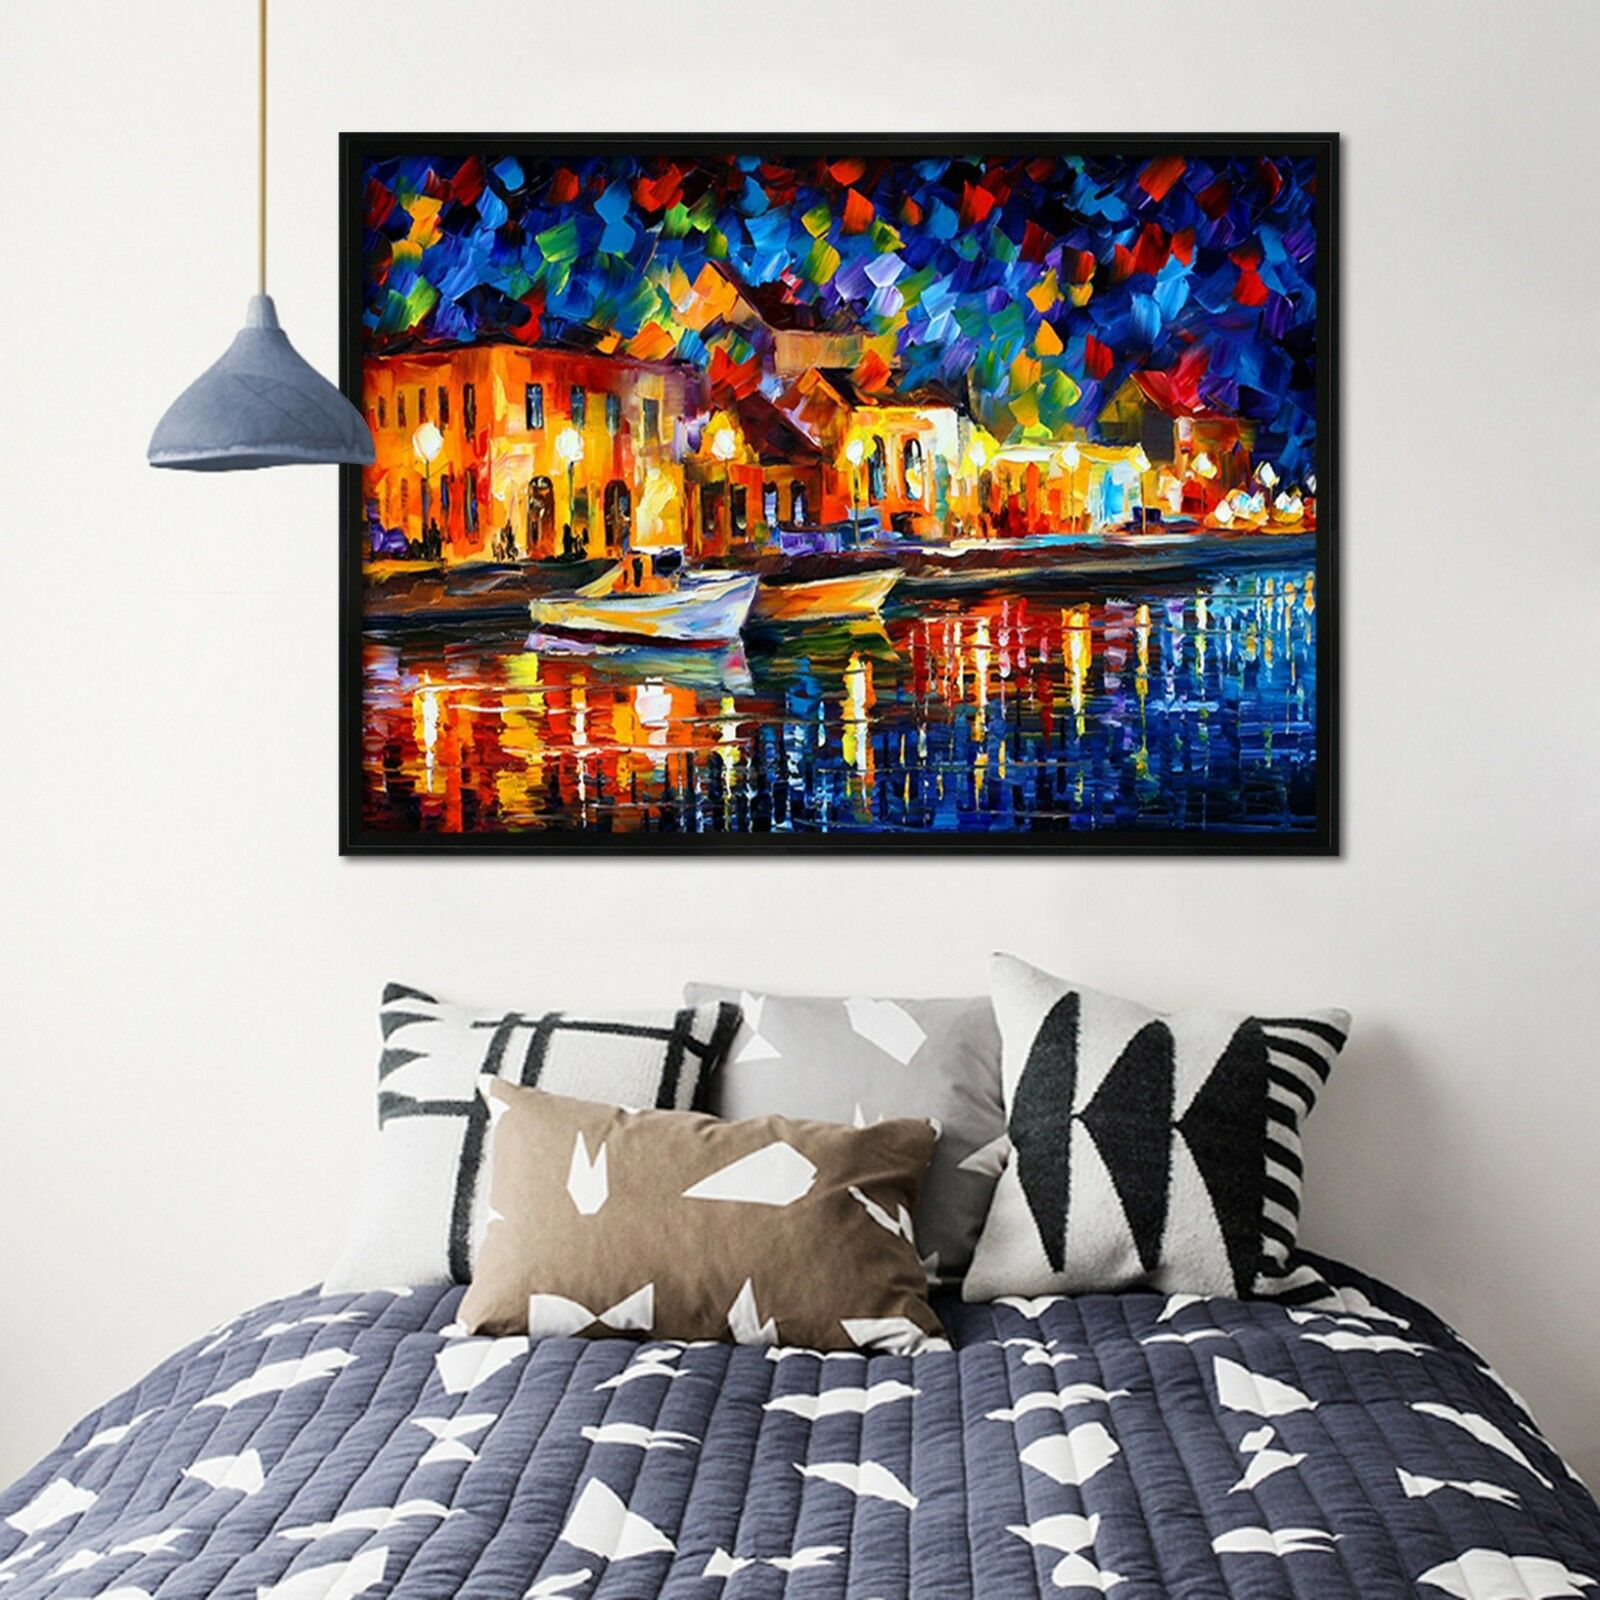 3D Paint House 65 Fake Framed Poster Home Decor Print Painting Unique Art Summer